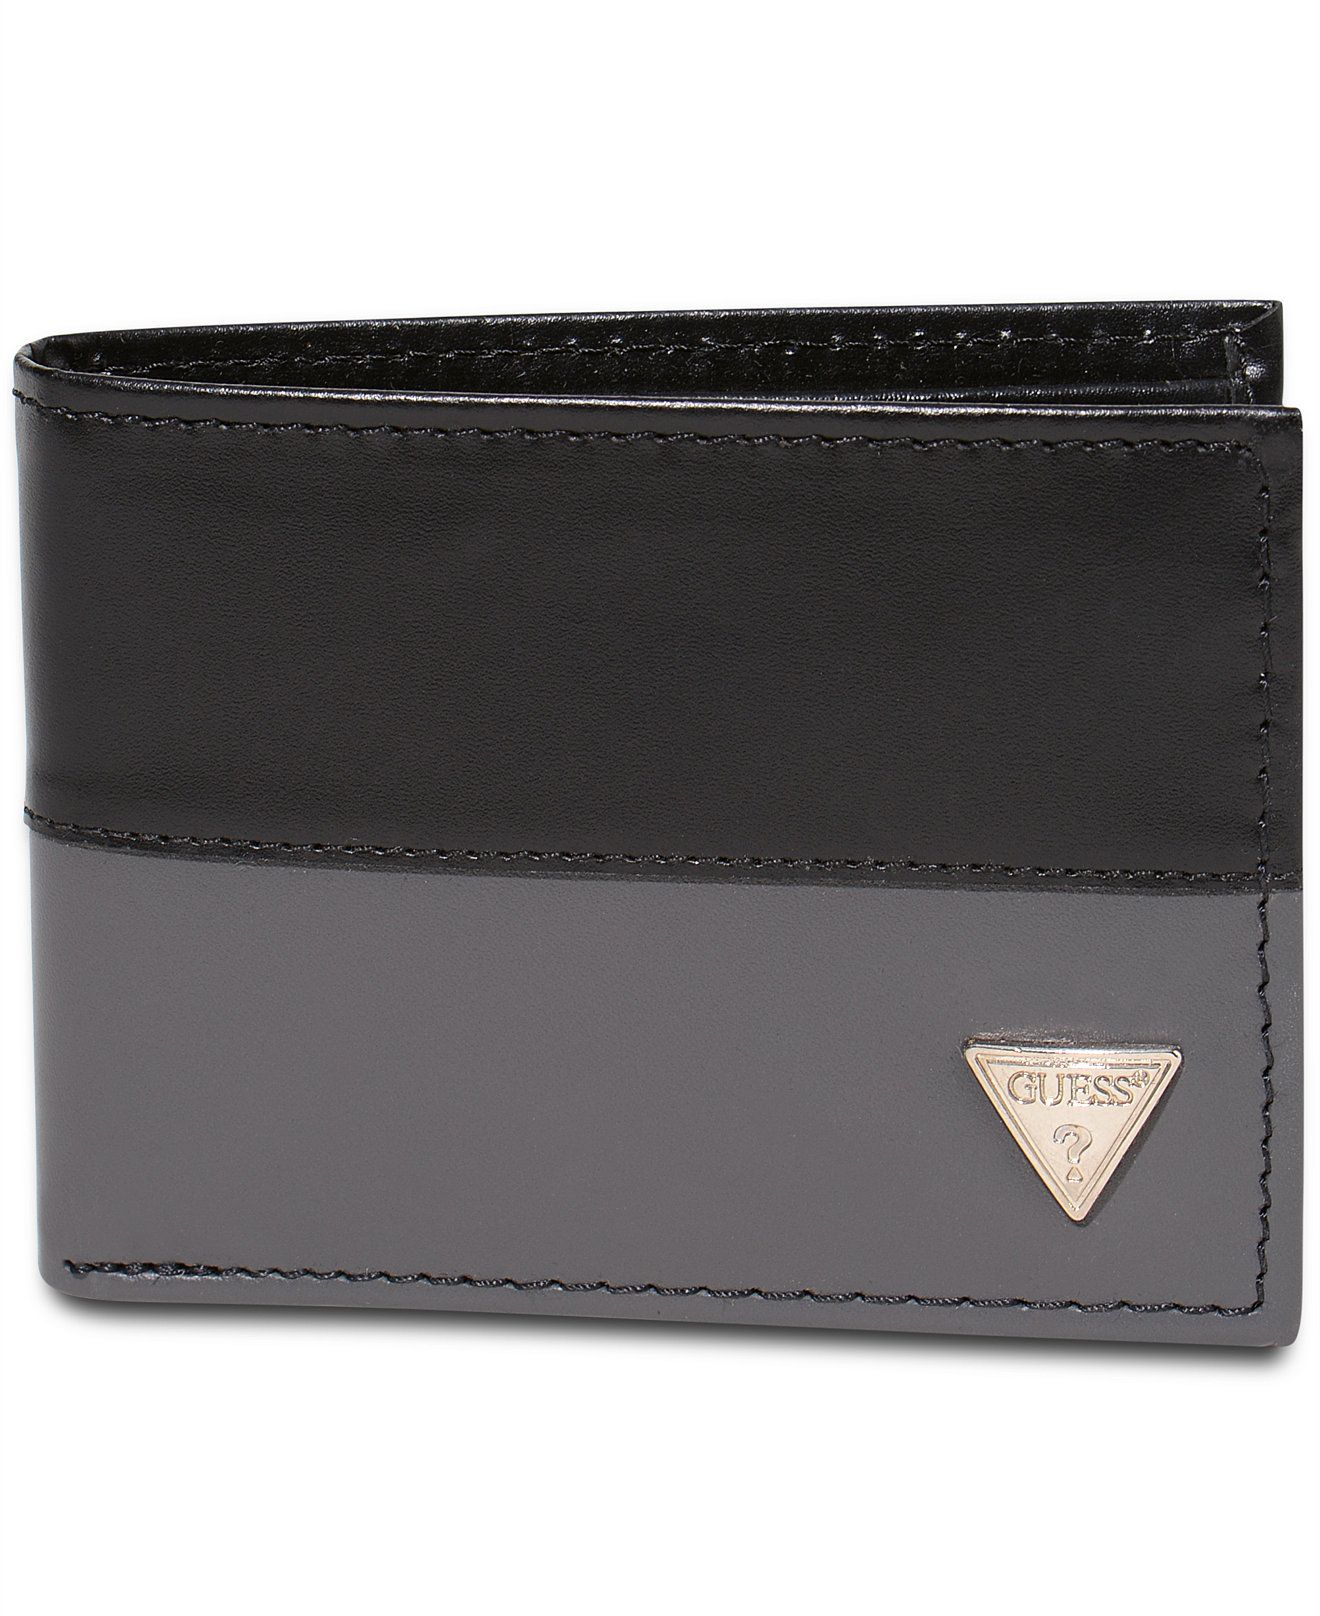 GUESS Semi Glazed Slim Bifold Wallet - Accessories   Wallets - Men - Macy s c39713ccbf7ae